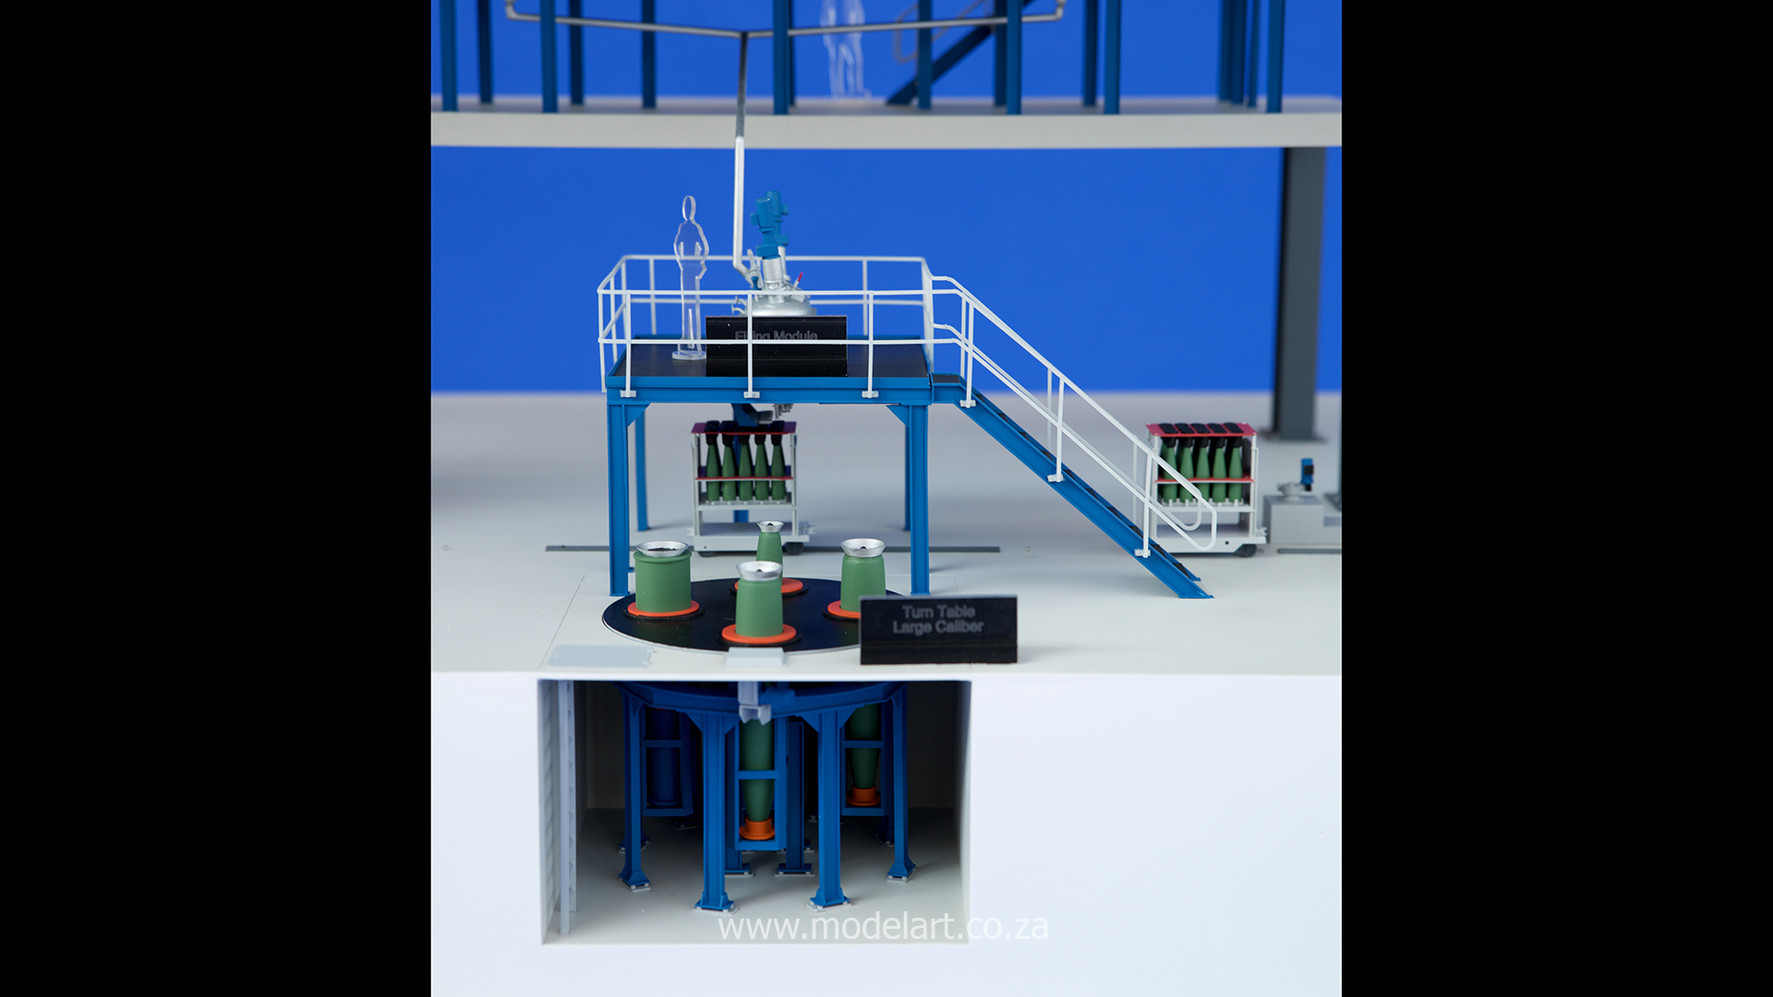 Architectural-Scale-Model-Engineering-Denel Munitions Plant 2-6